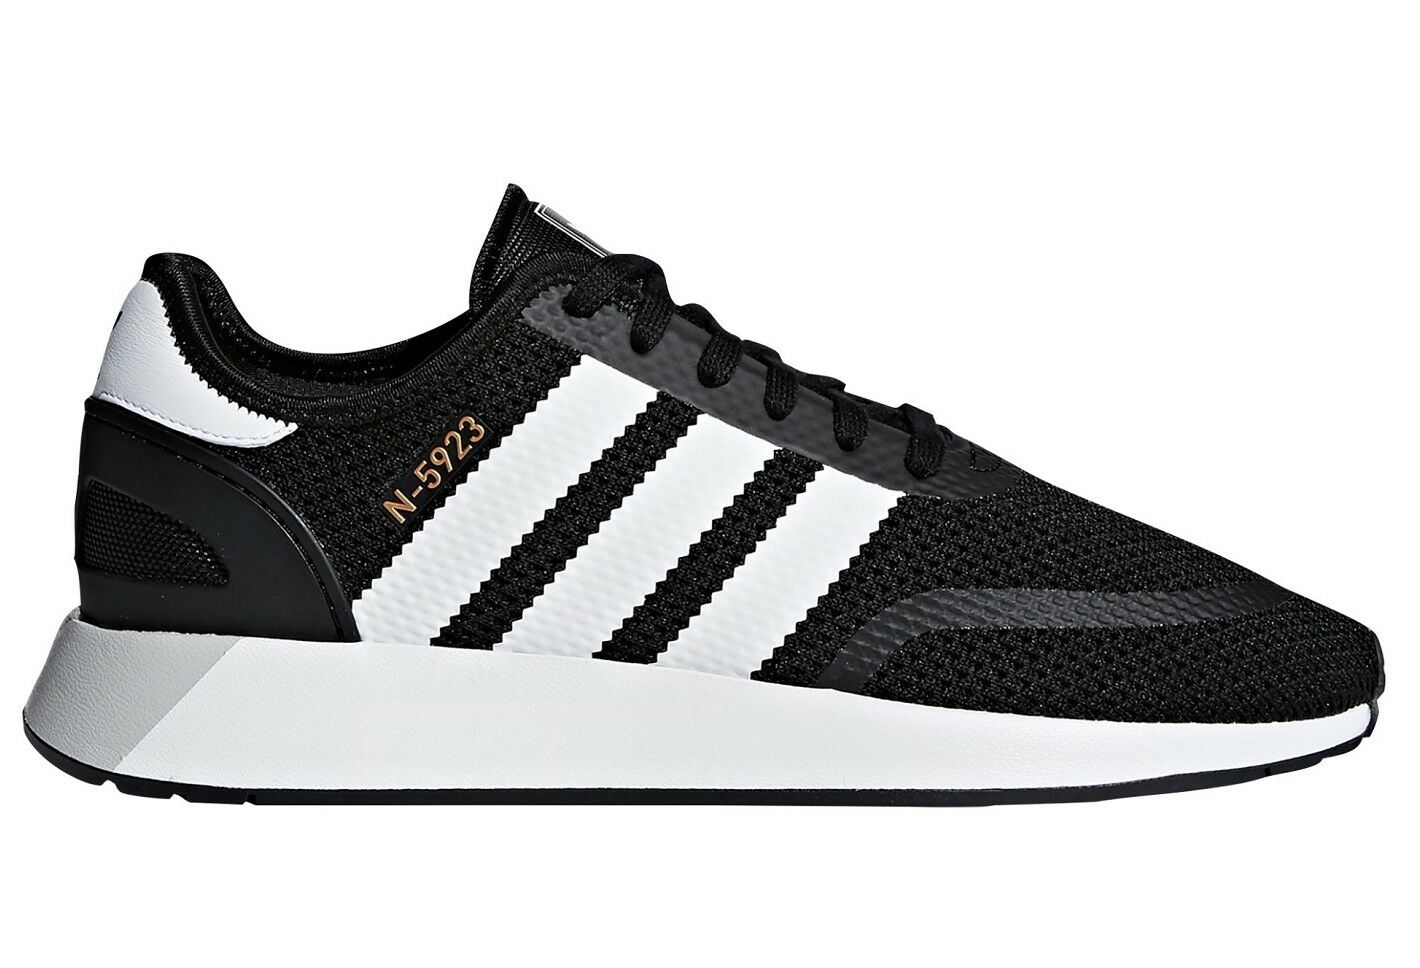 Adidas N-5923 Mens CQ2337 Black White Grey One Textile Running Shoes Size 10